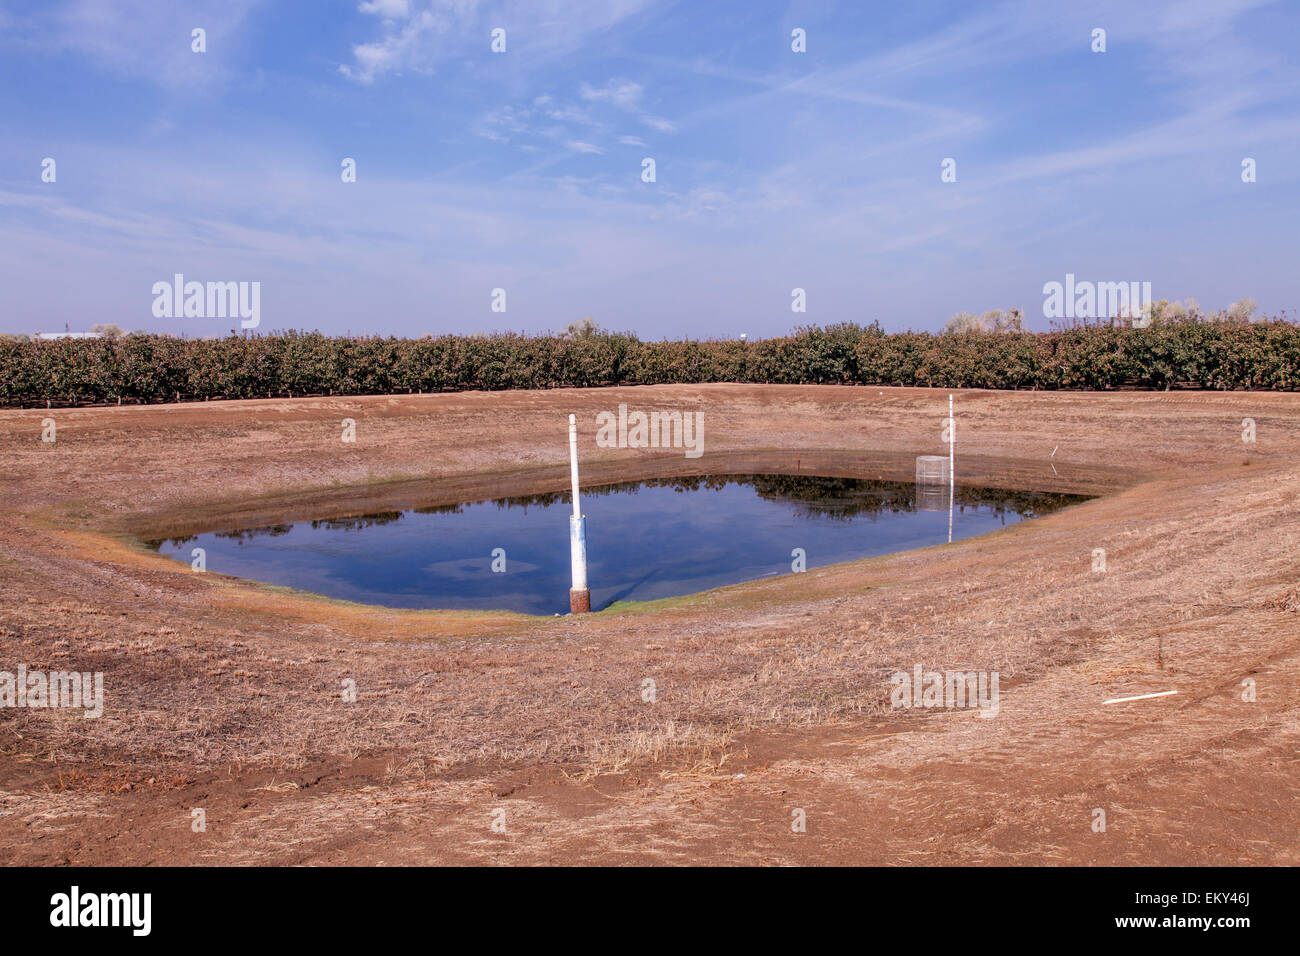 A return Pond is located at the lowest corner of a crop field to retain rainwater and irrigation drainage, Tulare - Stock Image